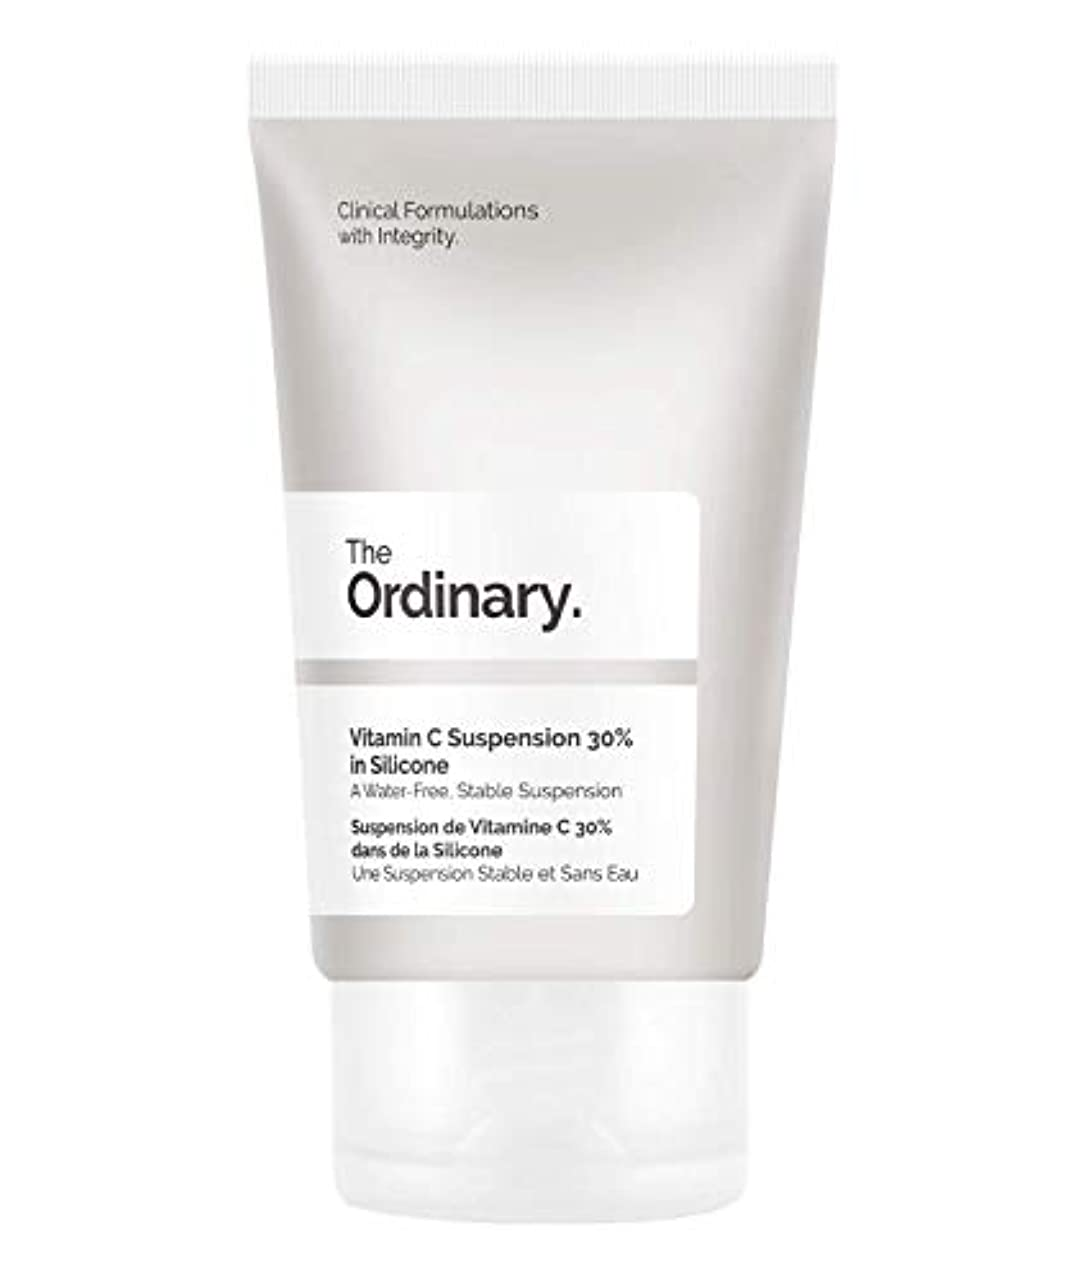 勉強する国通行料金The Ordinary Vitamin C Suspension 30% in Silicone FULL SIZE 30ml